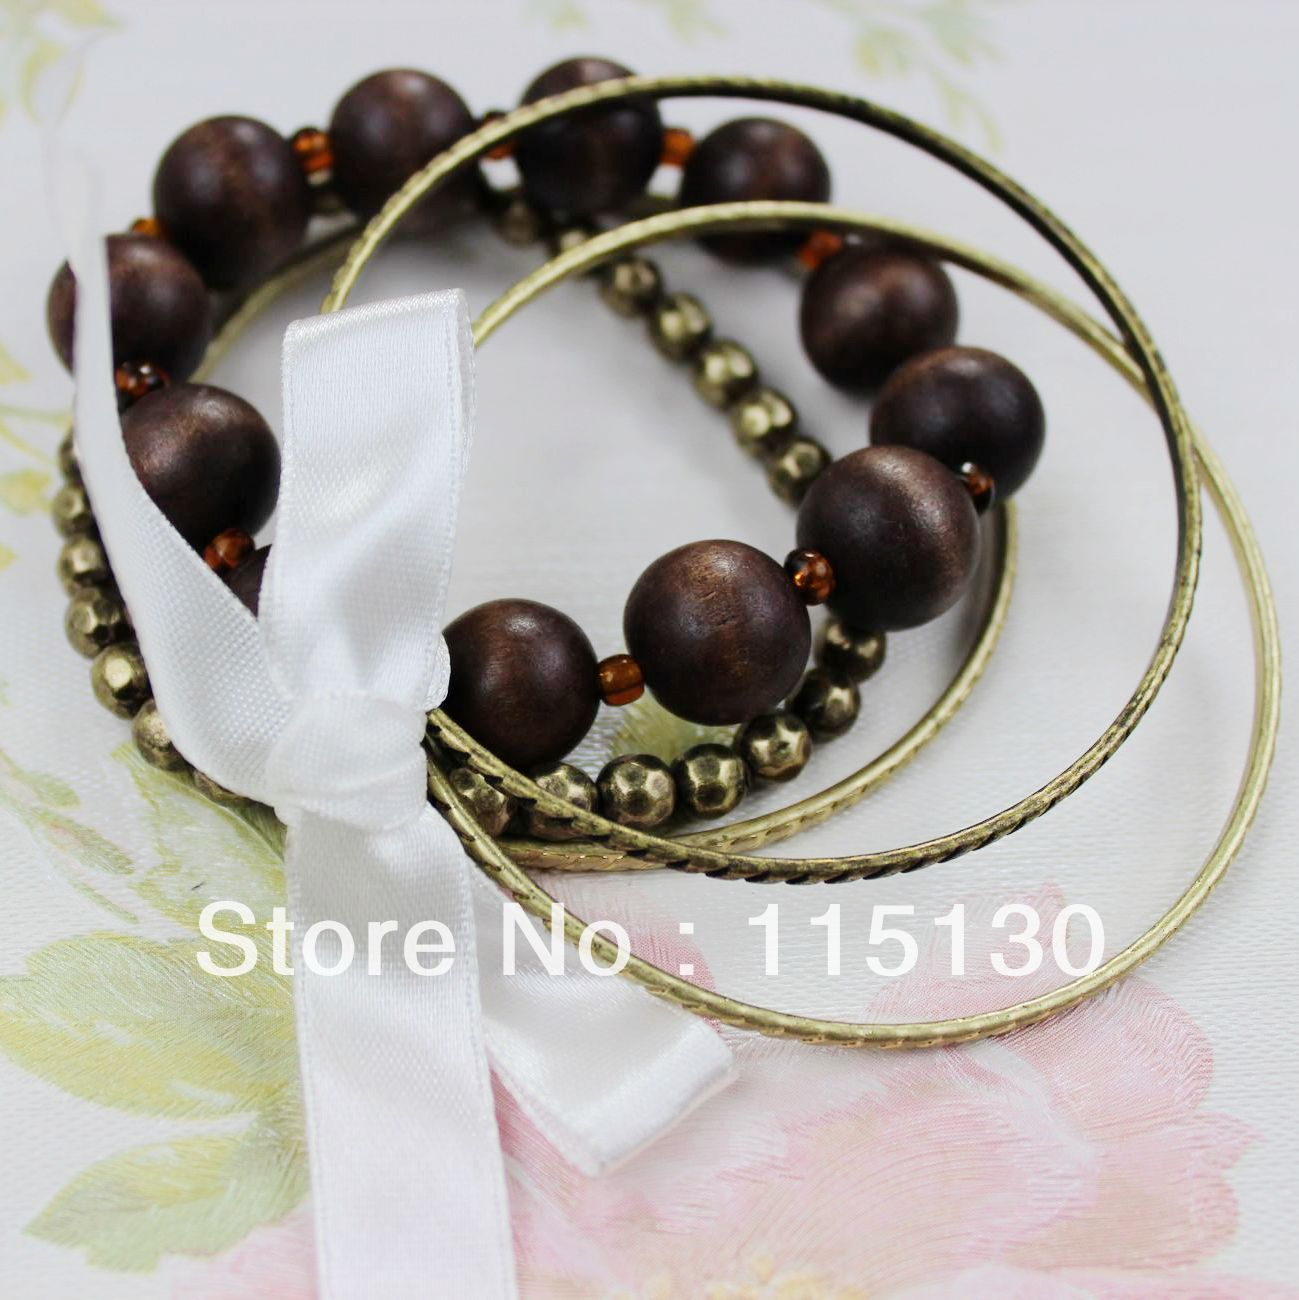 Vintage Jewelry Wooden Beads Charm Bracelets Set For Women Multilayer Beaded Gold Bracelets&am